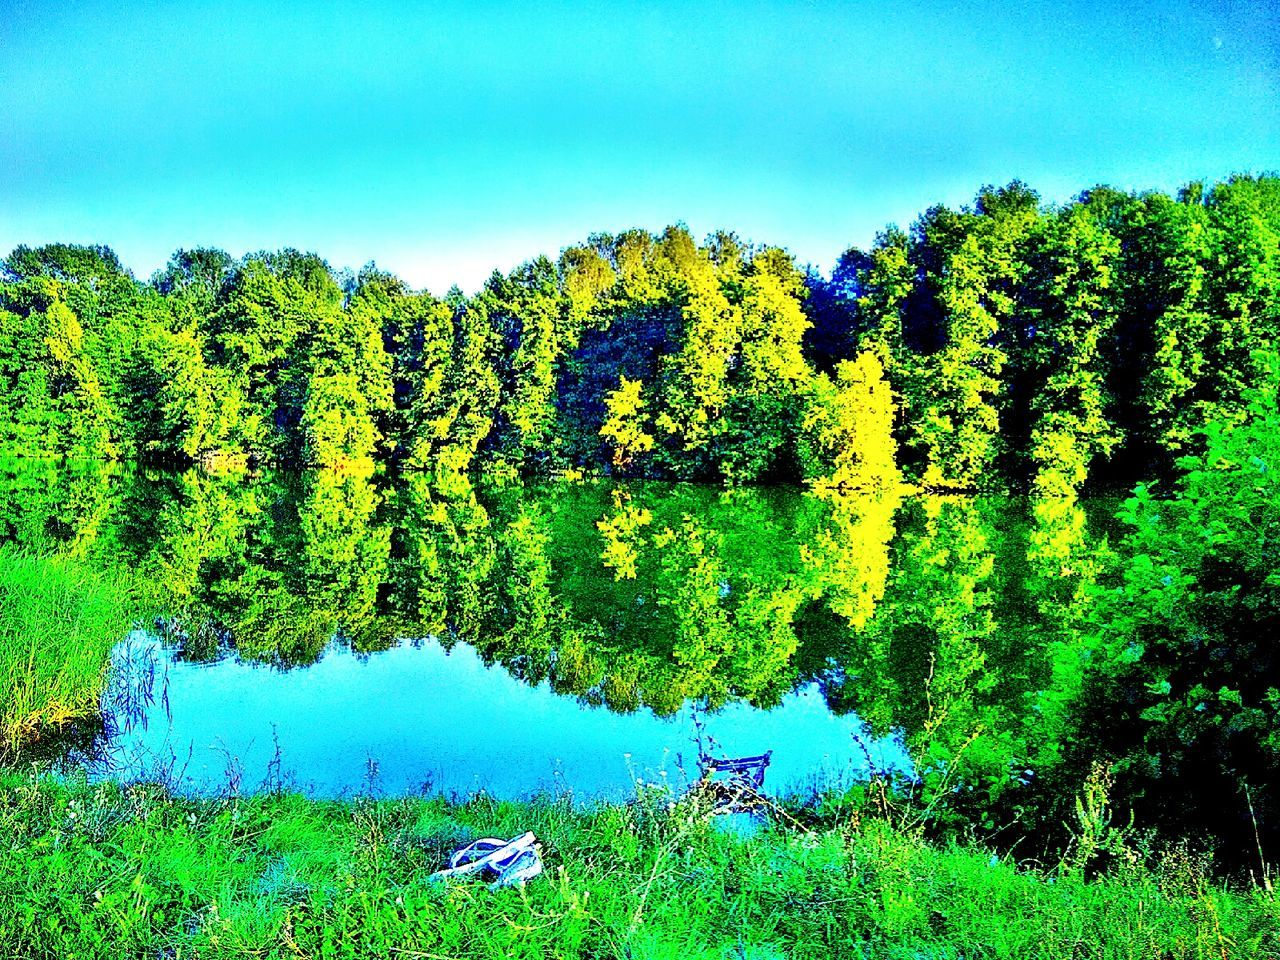 Lake Water Tree Blue Green Color Beauty In Nature Reflection Majestic Themagicmission Clear Sky Green Nature Vibrant Color Non-urban Scene Day EyeEm Best Edits Eyeem New Talent New Talent This Week Eyeem Collection Eyeem Photography EyeEm Best Shots Battle Of The Cities Selective Focus Lifestyles My Favorite Place